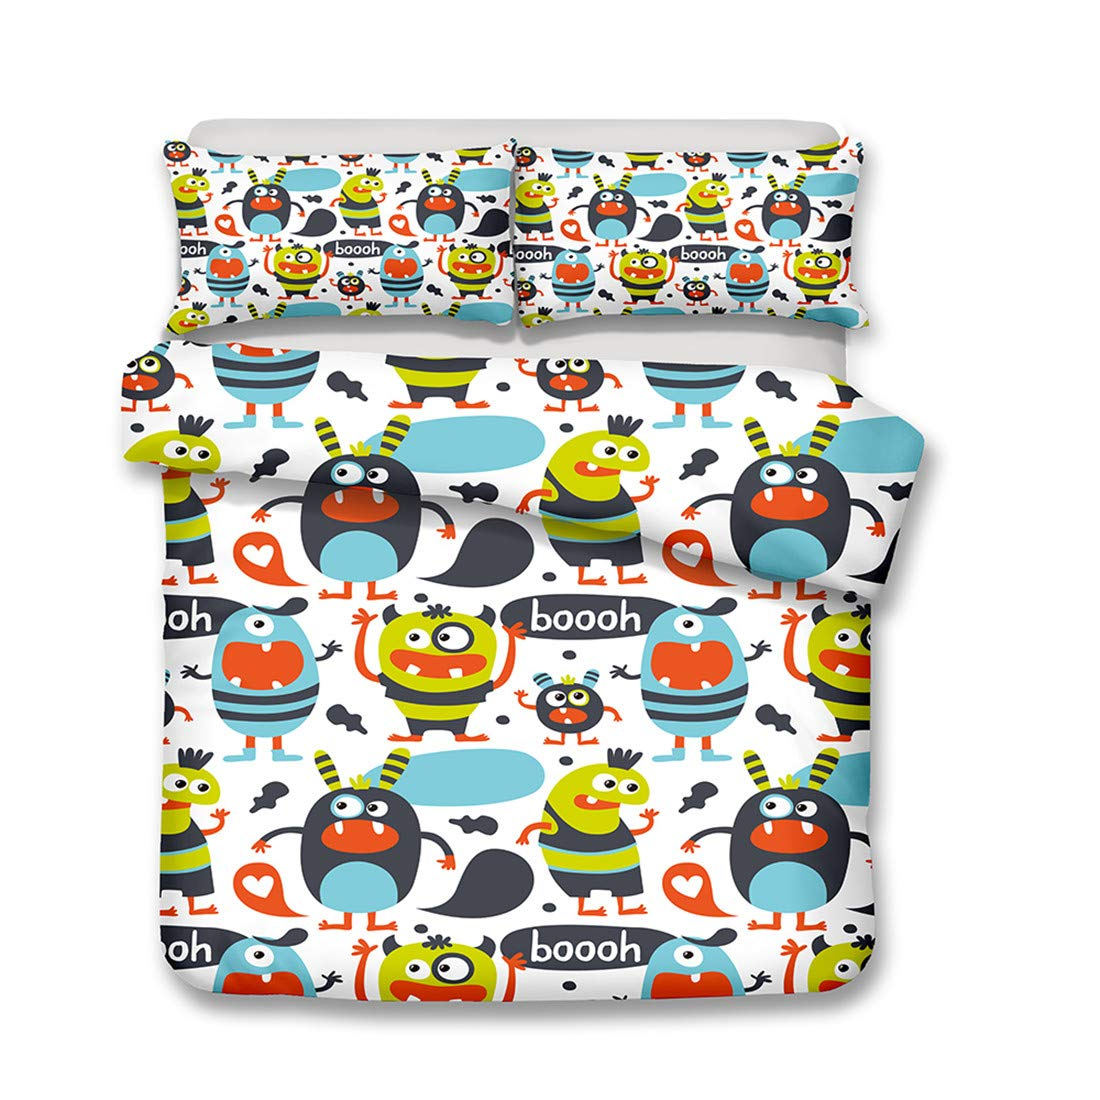 Mrsrui Bed Sheet Set Super Soft Microfiber Kid Cartoon ET Printed Sheets Wrinkle and Hypoallergenic-3 Piece(1 Quilt Sheets + 2 Pillowcase) by Mrsrui